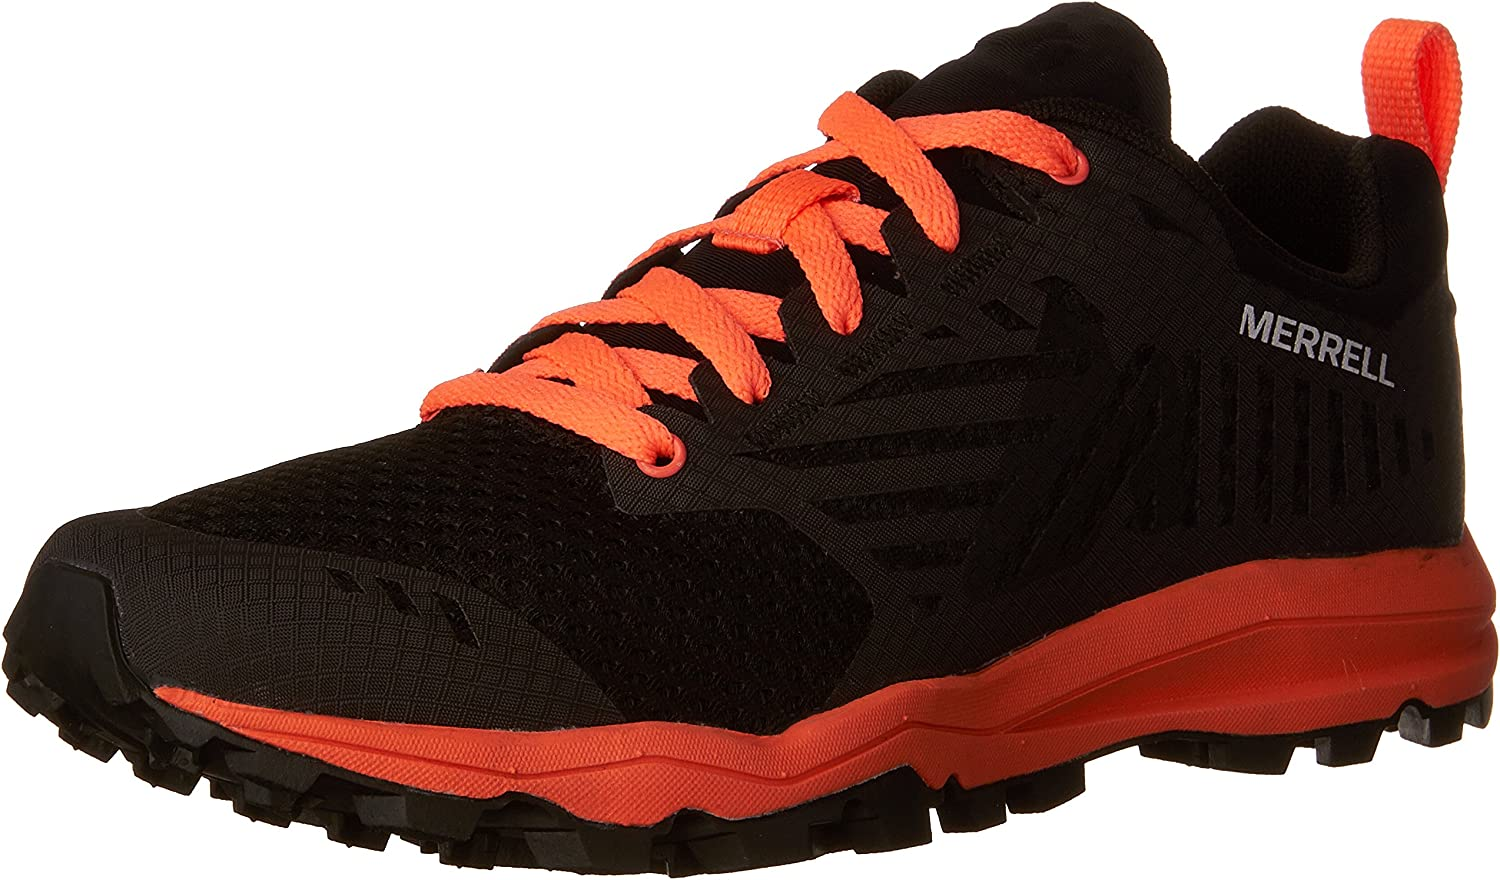 Merrell Women's Dexterity Hiking shoes